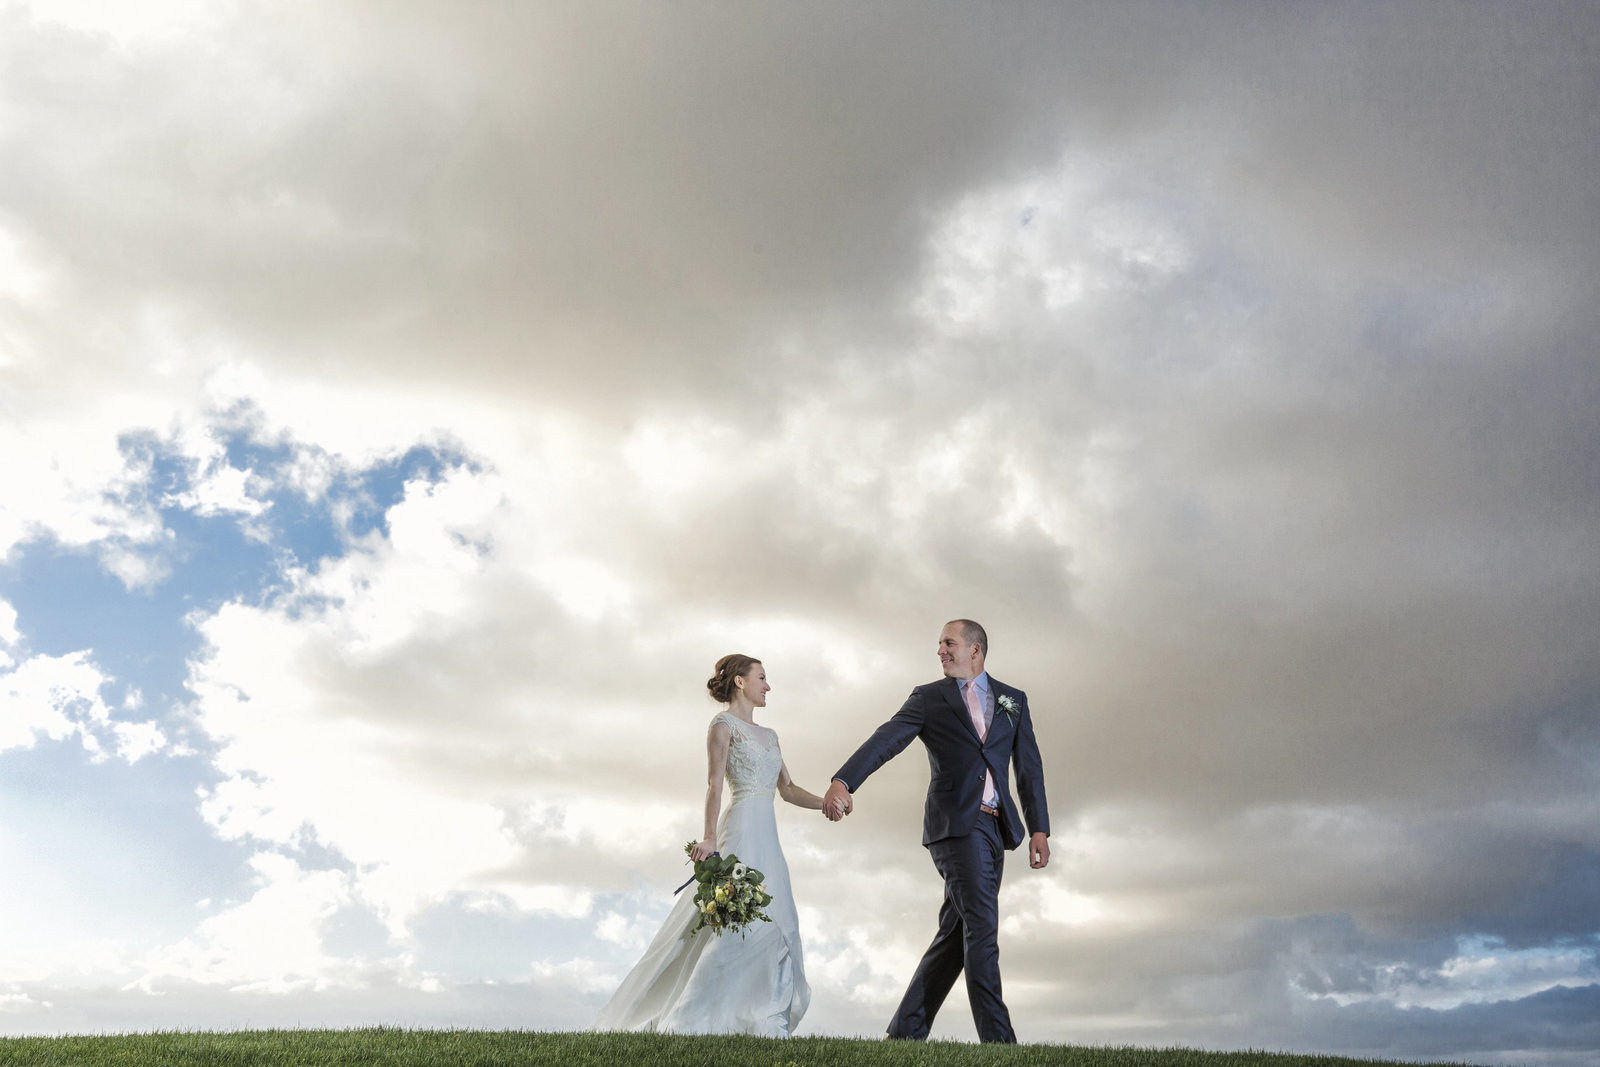 wedding couple holding hand on a hill with epic clouds